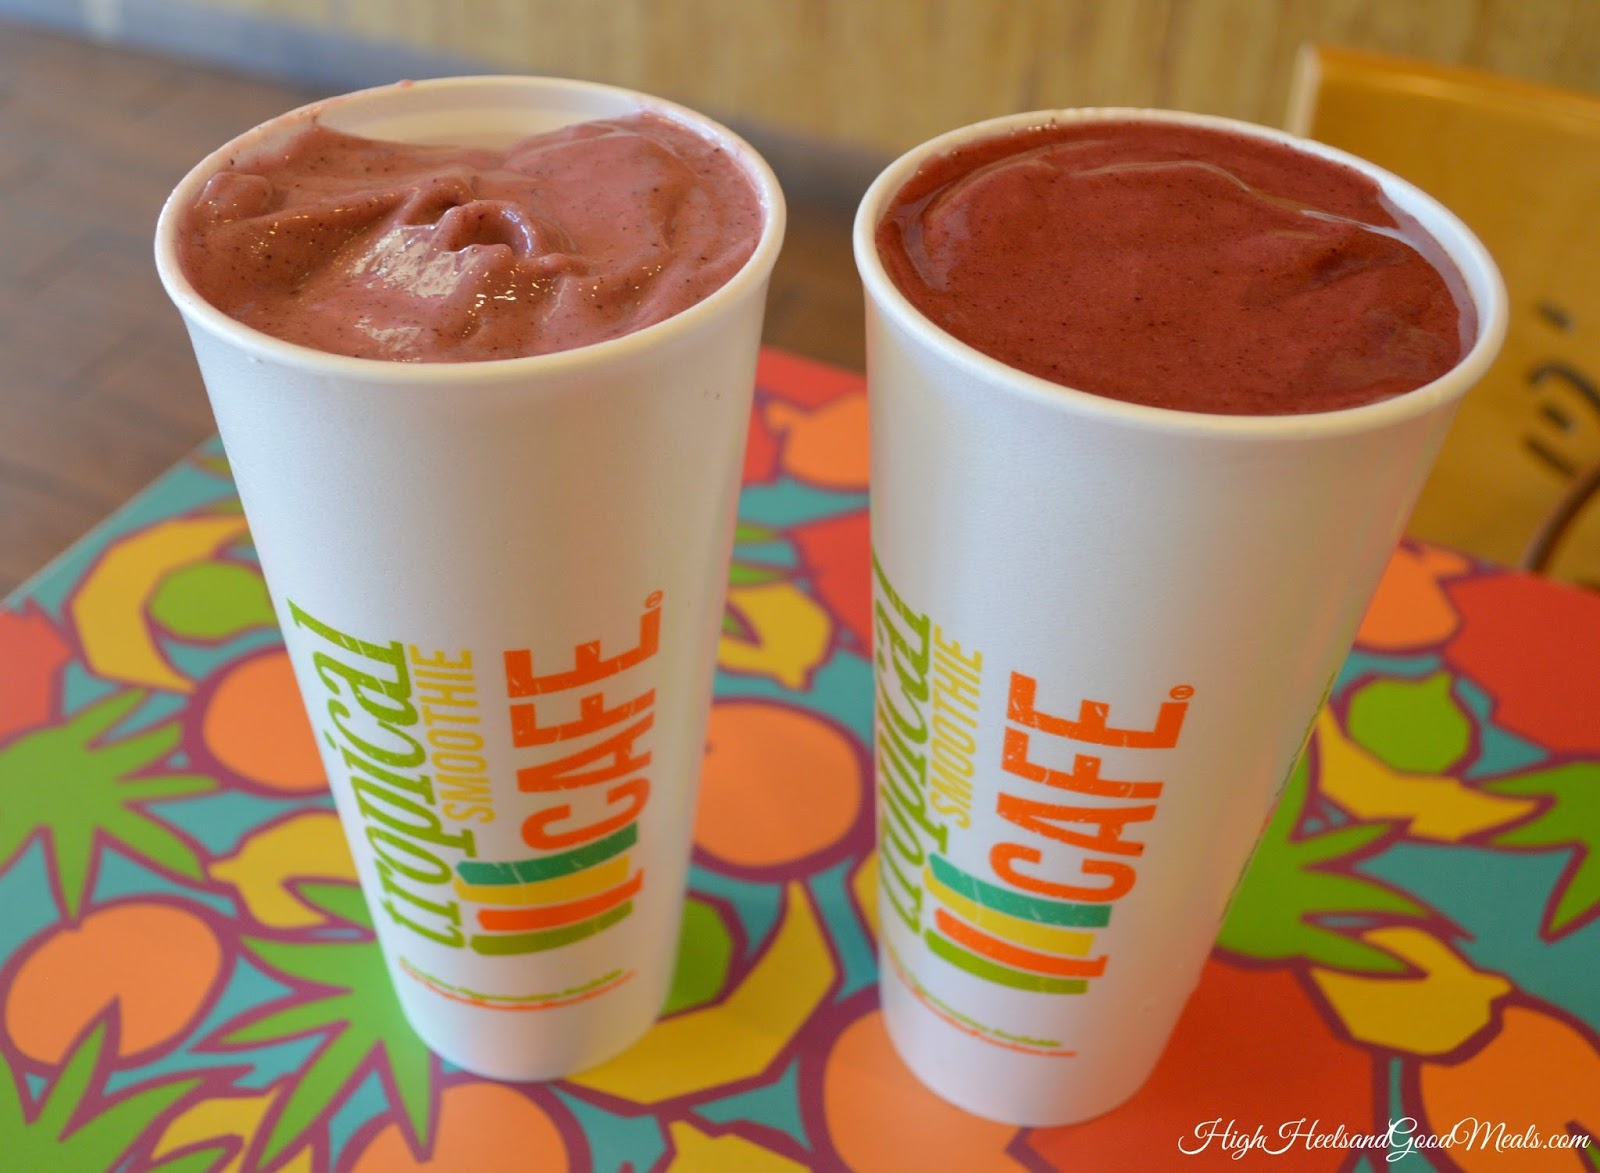 the blueberry pom truffle smoothie was sinfully devine it is made with ghirardelli white chocolate i mean come on they had me at ghirardelli - Tropical Cafe 2015